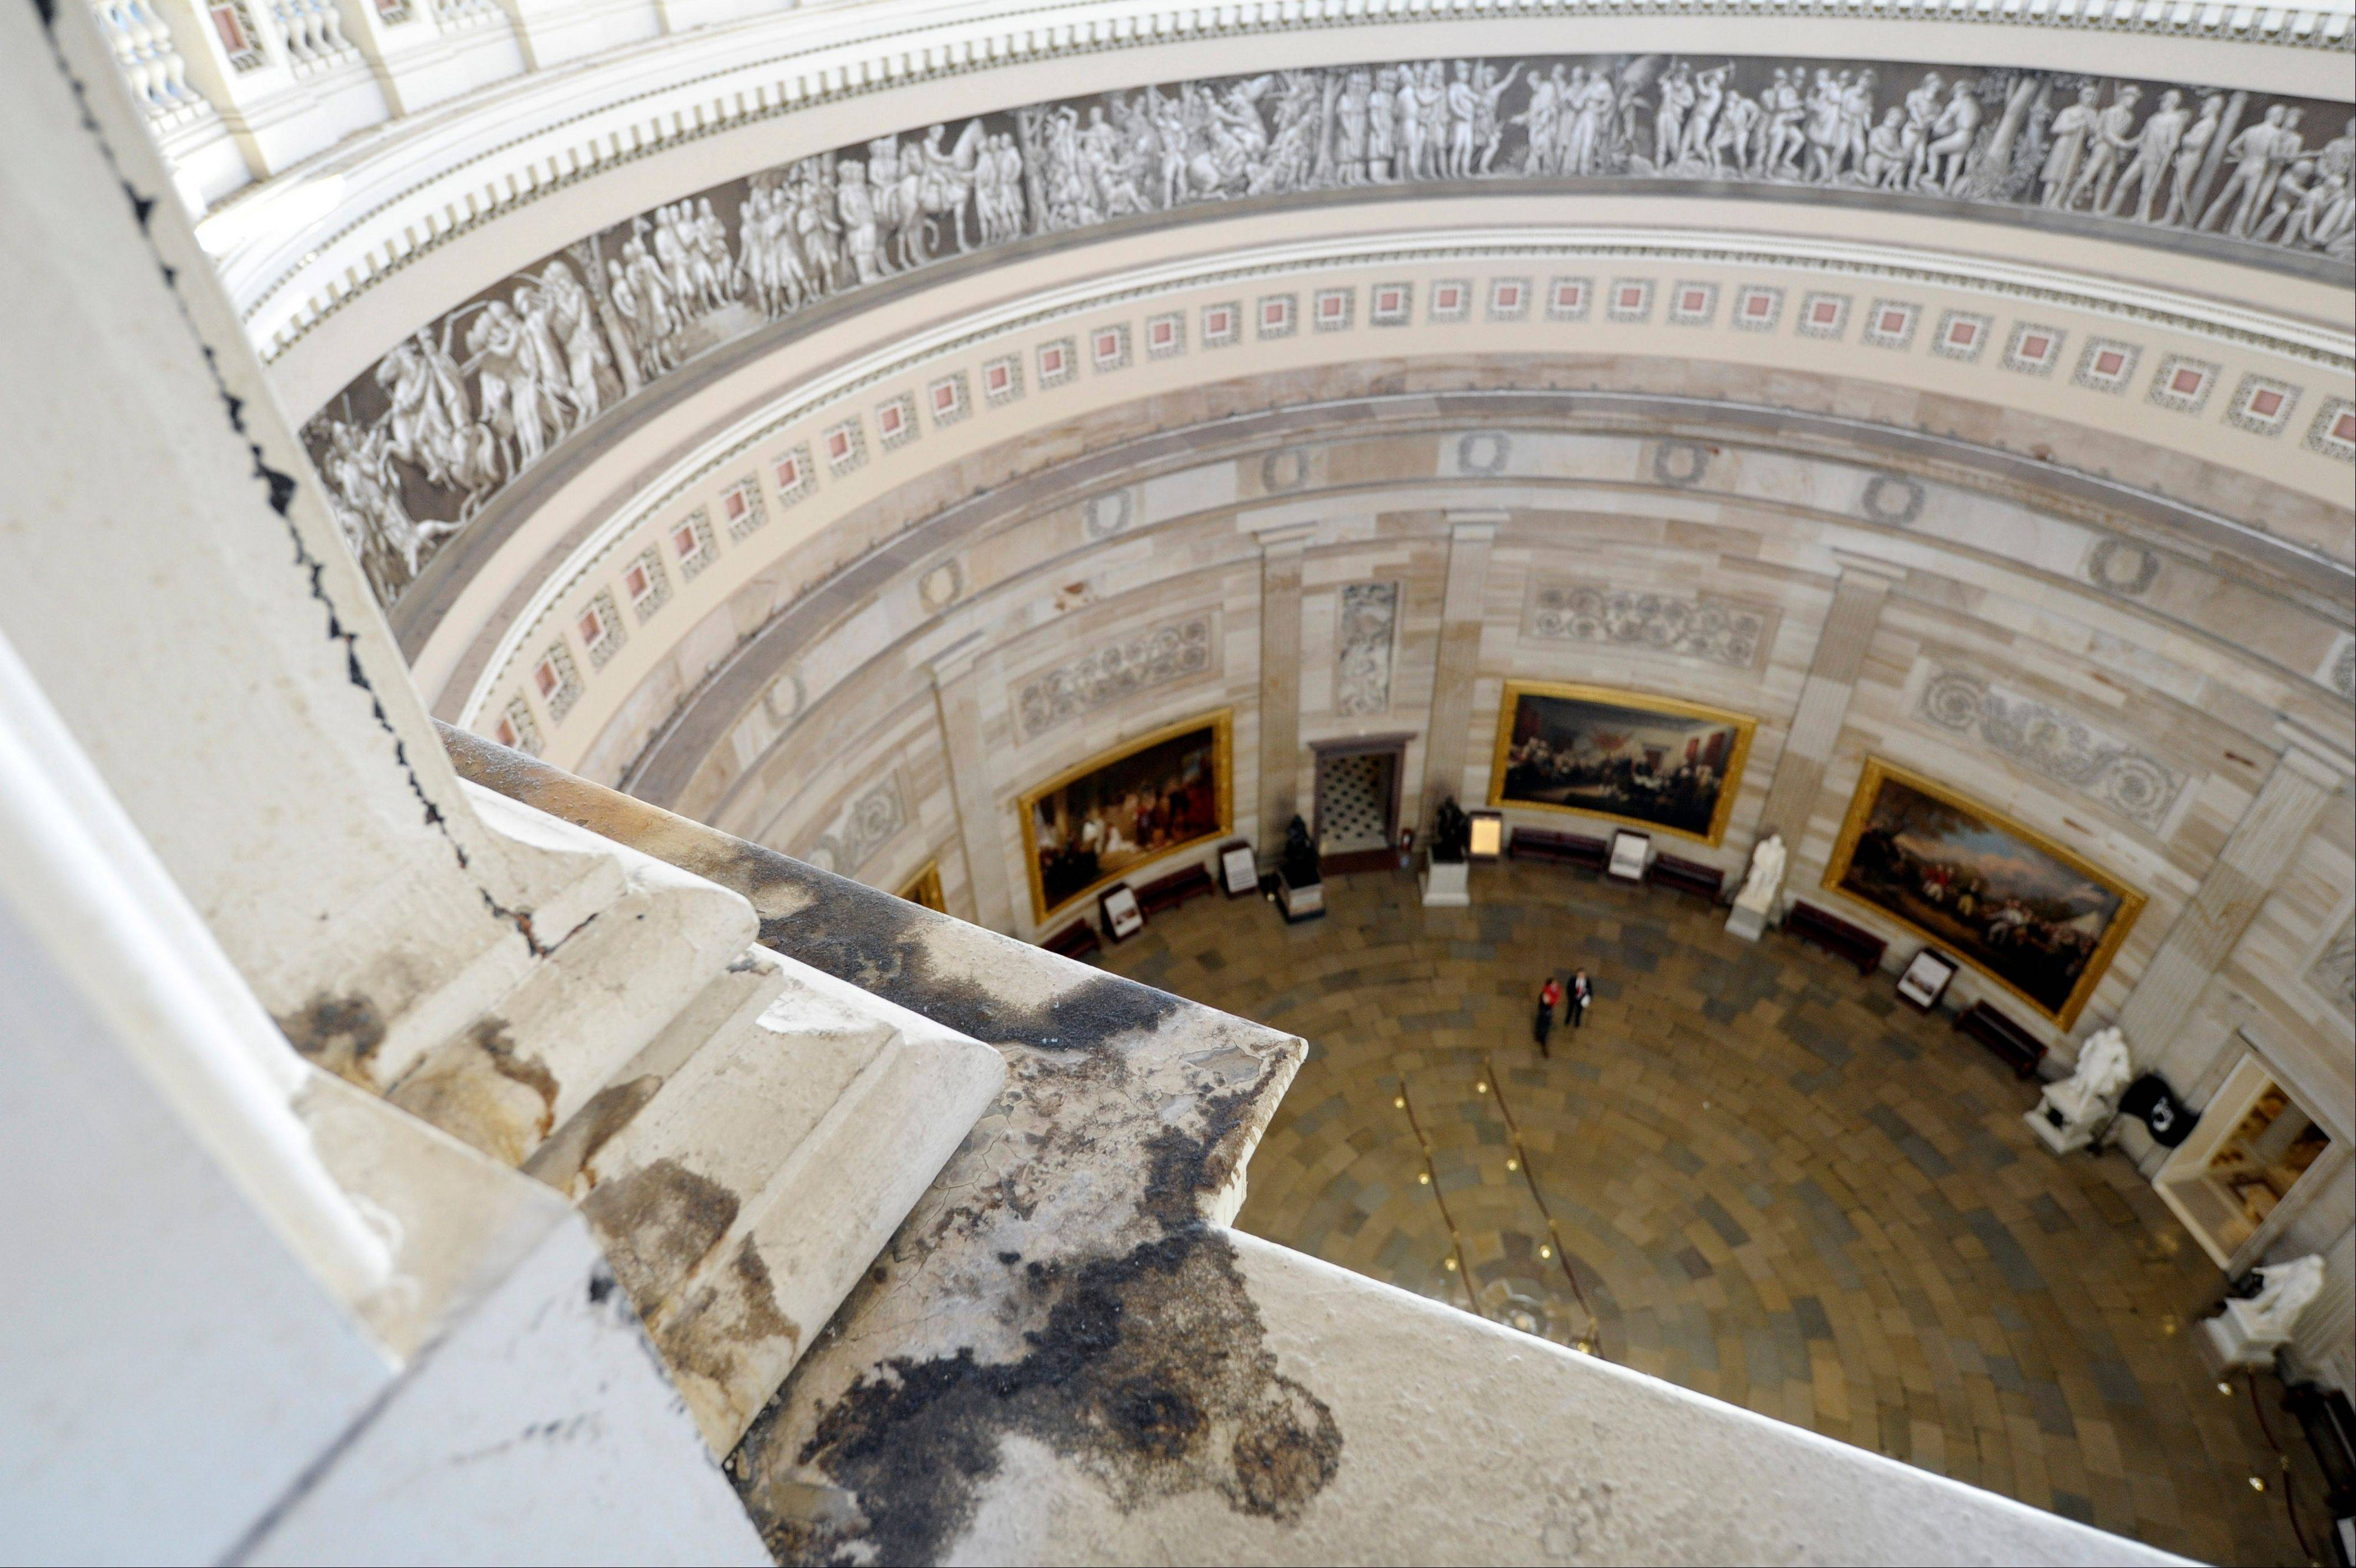 Water damage stains are visible on the inside of the Capitol Dome during a tour on Capitol Hill in Washington, Thursday, Dec. 19, 2013. Scaffolding will begin to cover the Capitol dome this spring when the $60 million restoration project begins. This is the first major renovation since 1960.